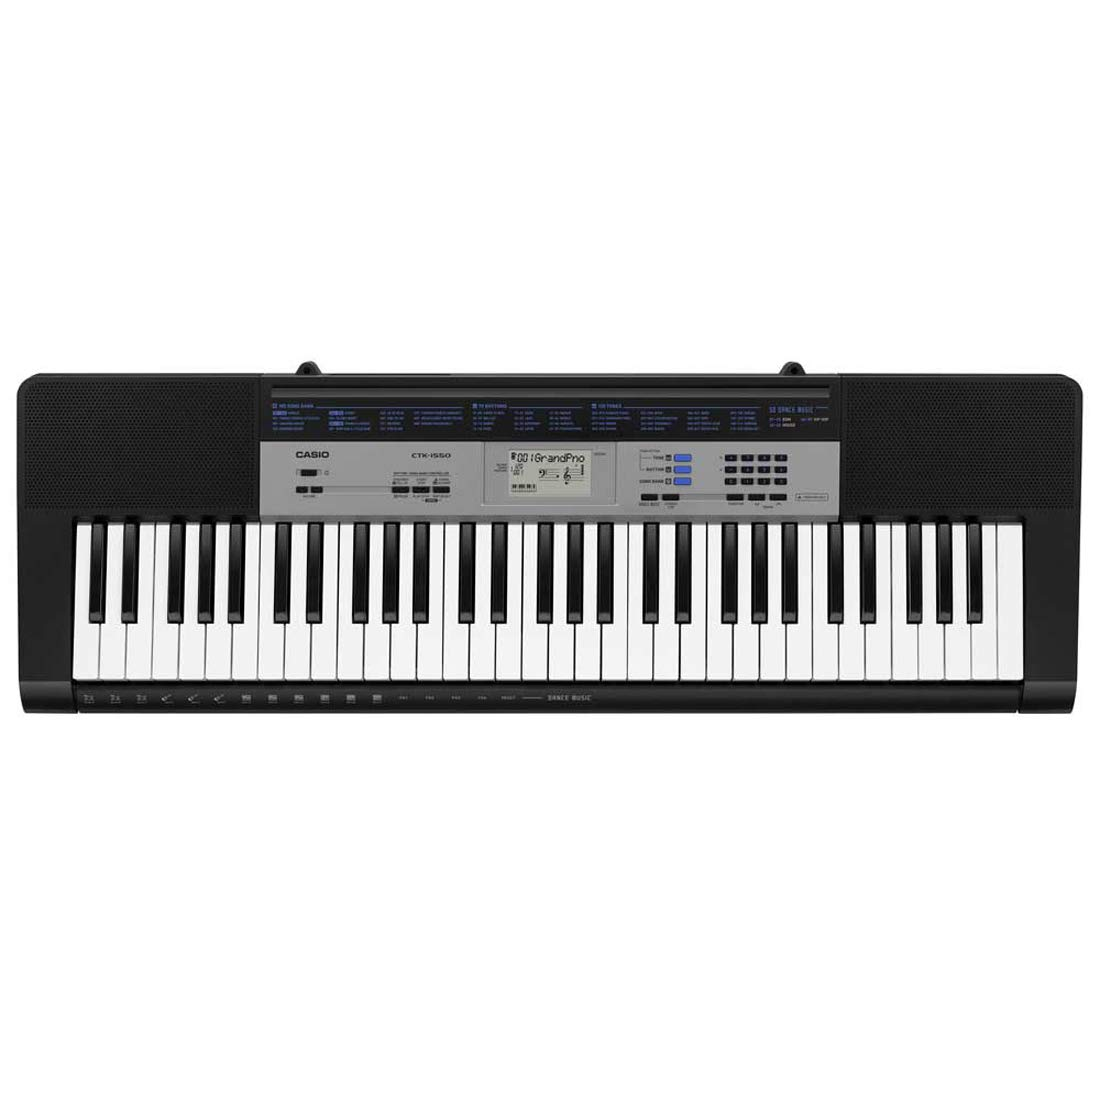 Casio CTK-1550 61-Key Standard Keyboard (Black) product image